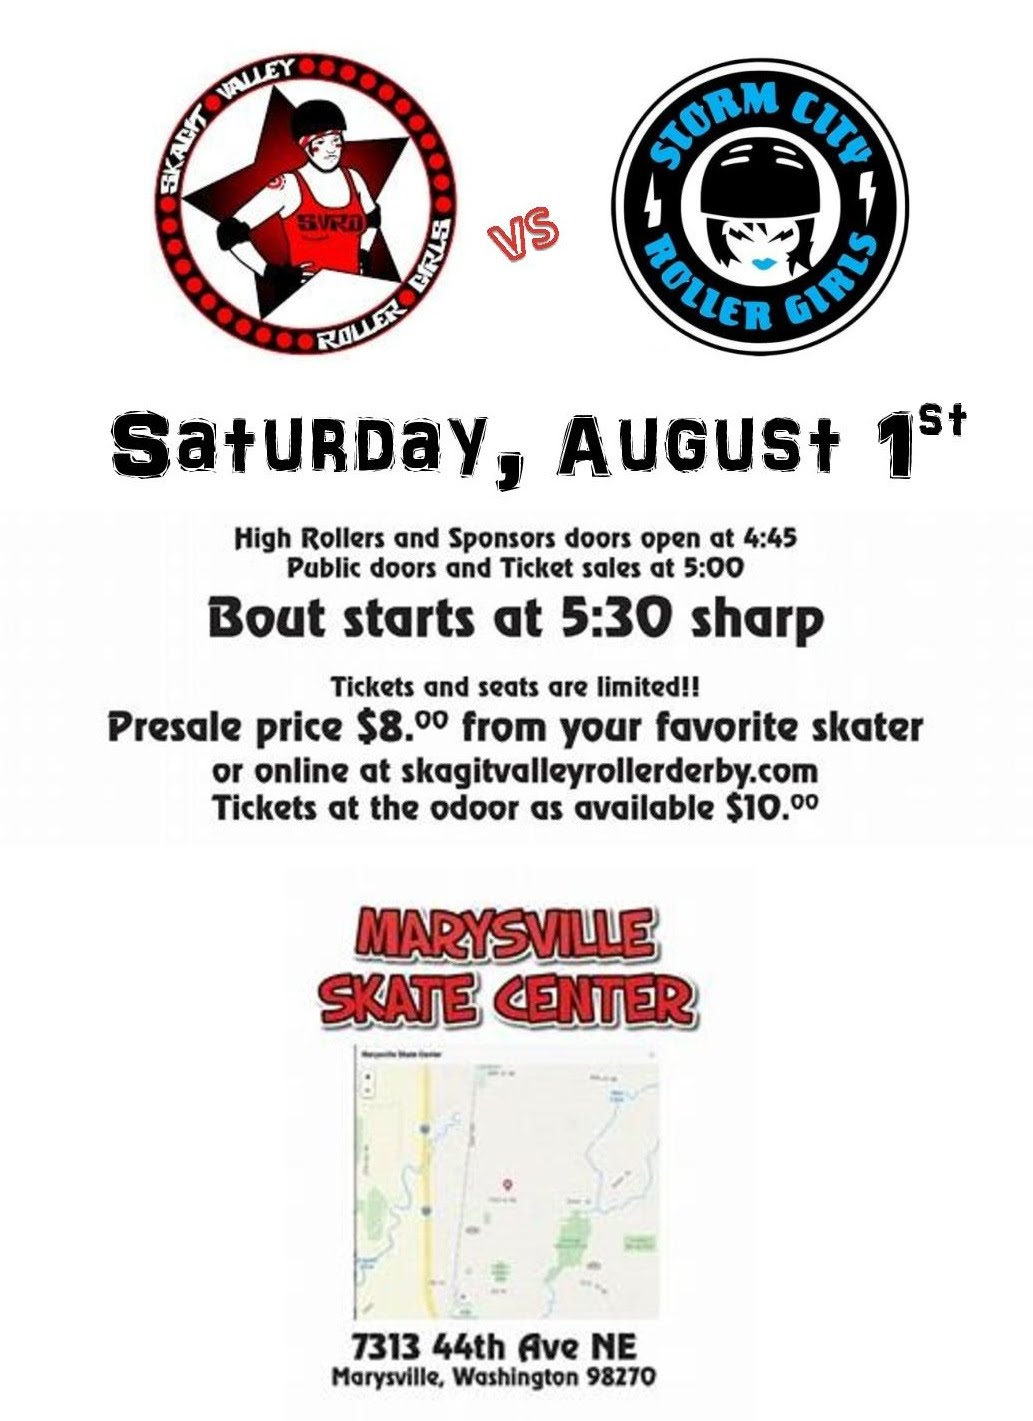 https://sites.google.com/site/https://sites.google.com/site/skagitvalleyrollerderby/events/tickets/home/AUGUST%201st-page-001.jpg